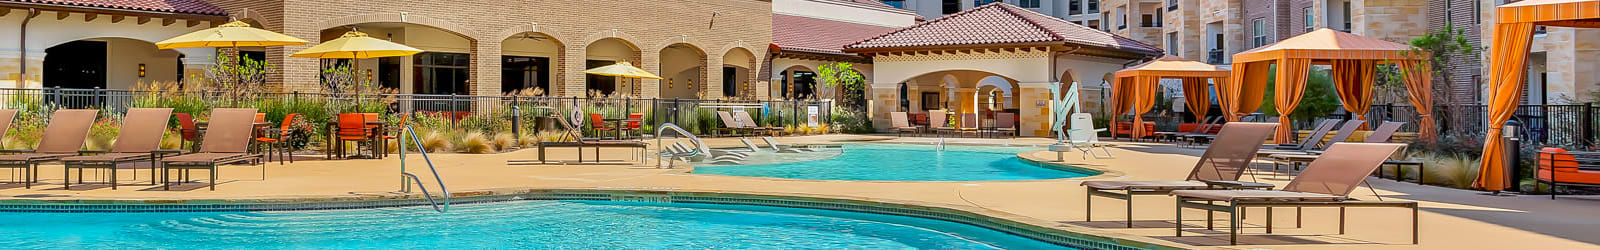 Apply at Villas at the Rim in San Antonio, Texas